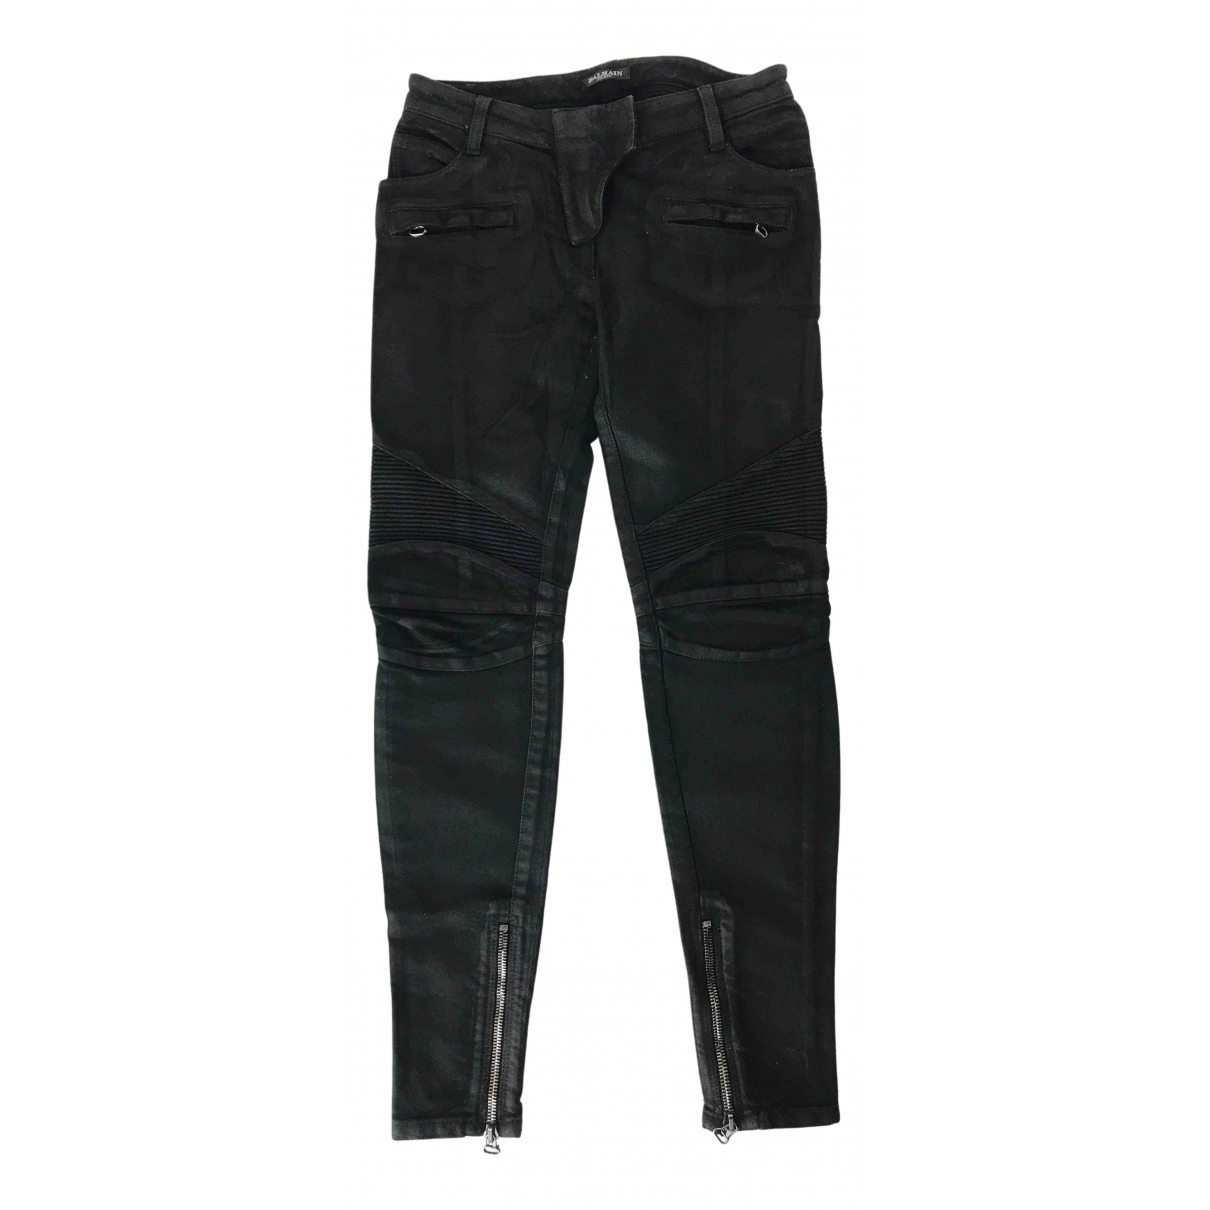 Balmain \N Black Cotton Jeans for Women 42 IT